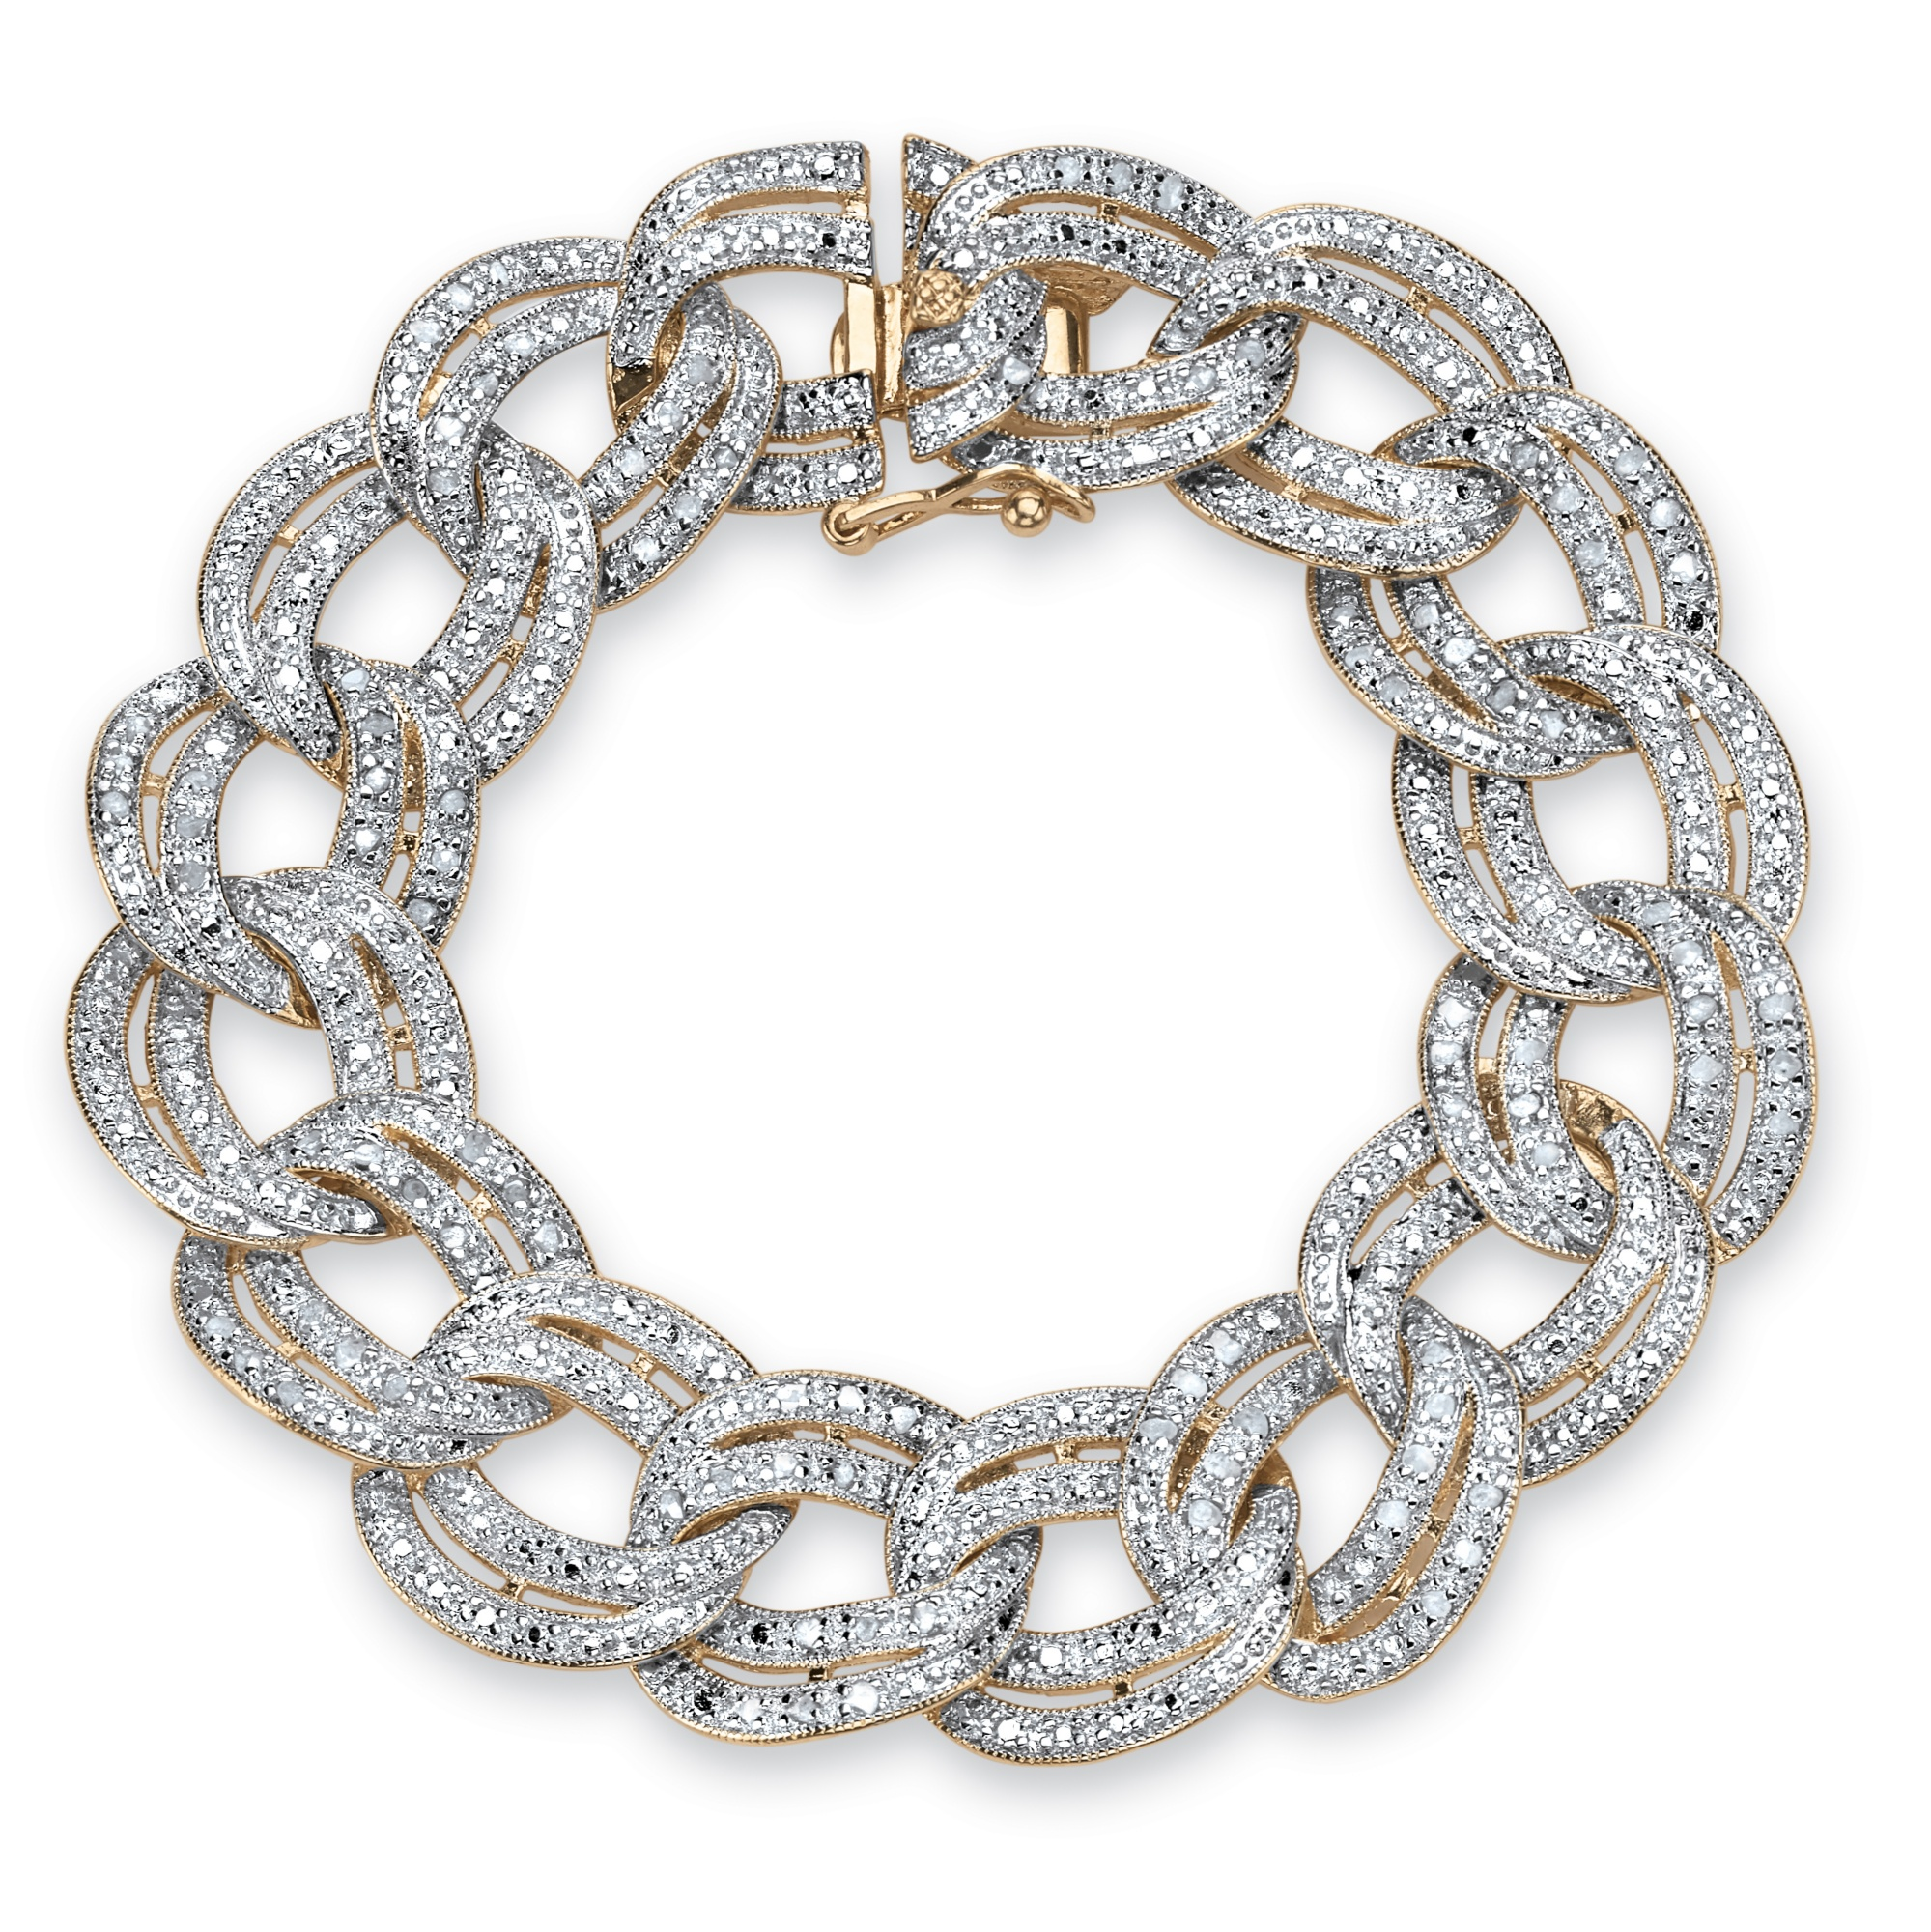 7/8 TCW Diamond Double Rolo-Link Bracelet 18k Yellow Gold-Plated